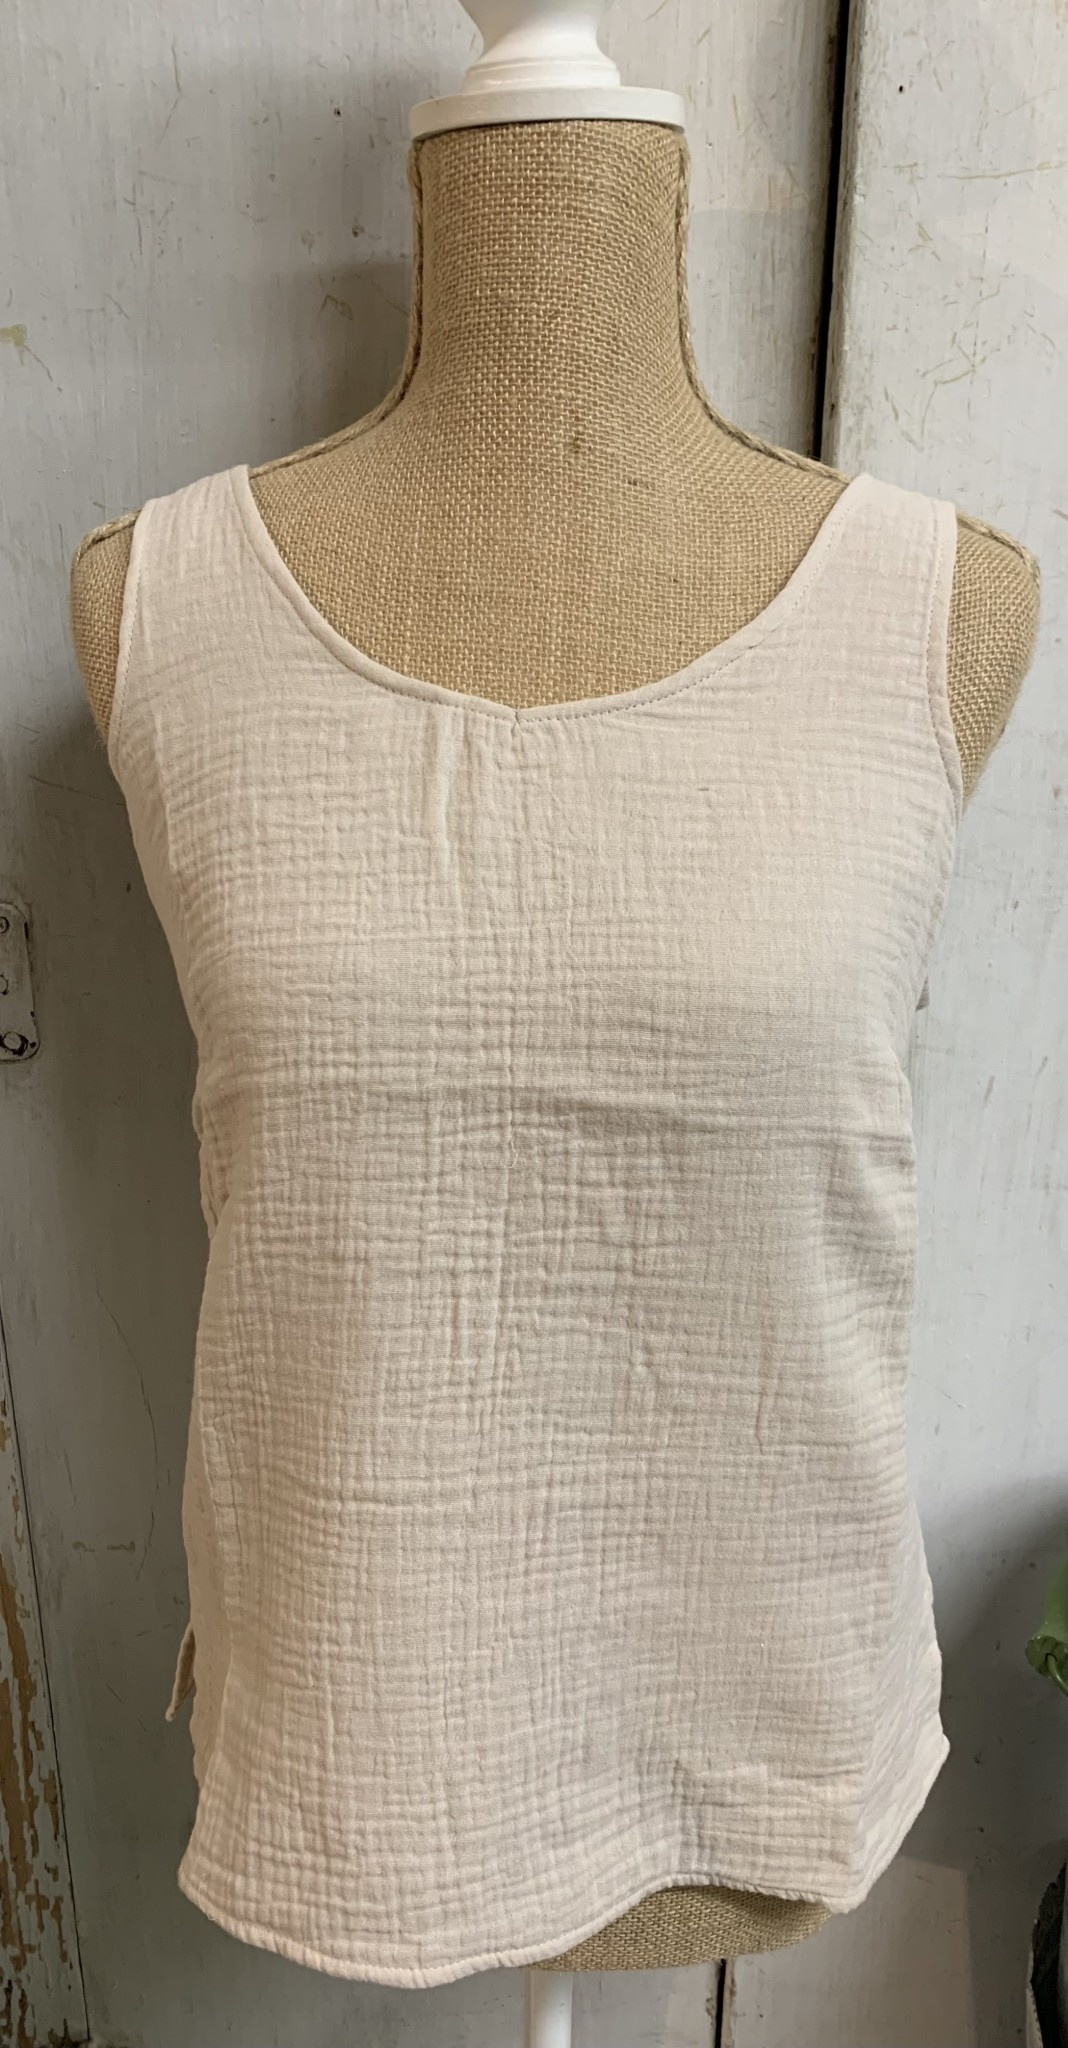 Charlie Paige Cotton Sleeveless Tank By: Charlie Paige (2-Colors)